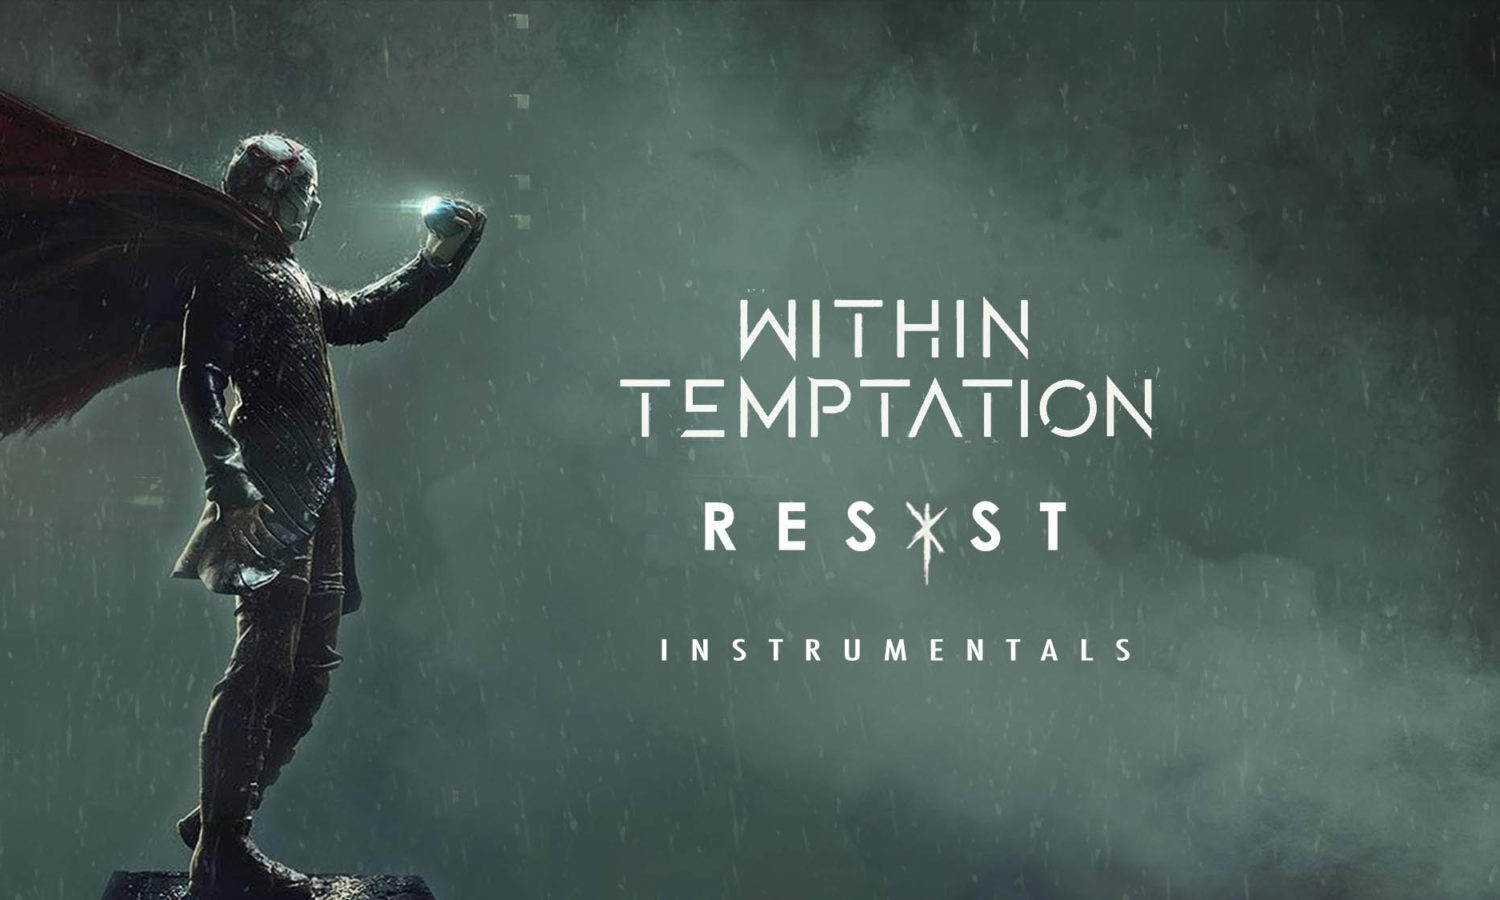 within temptation hydra instrumental